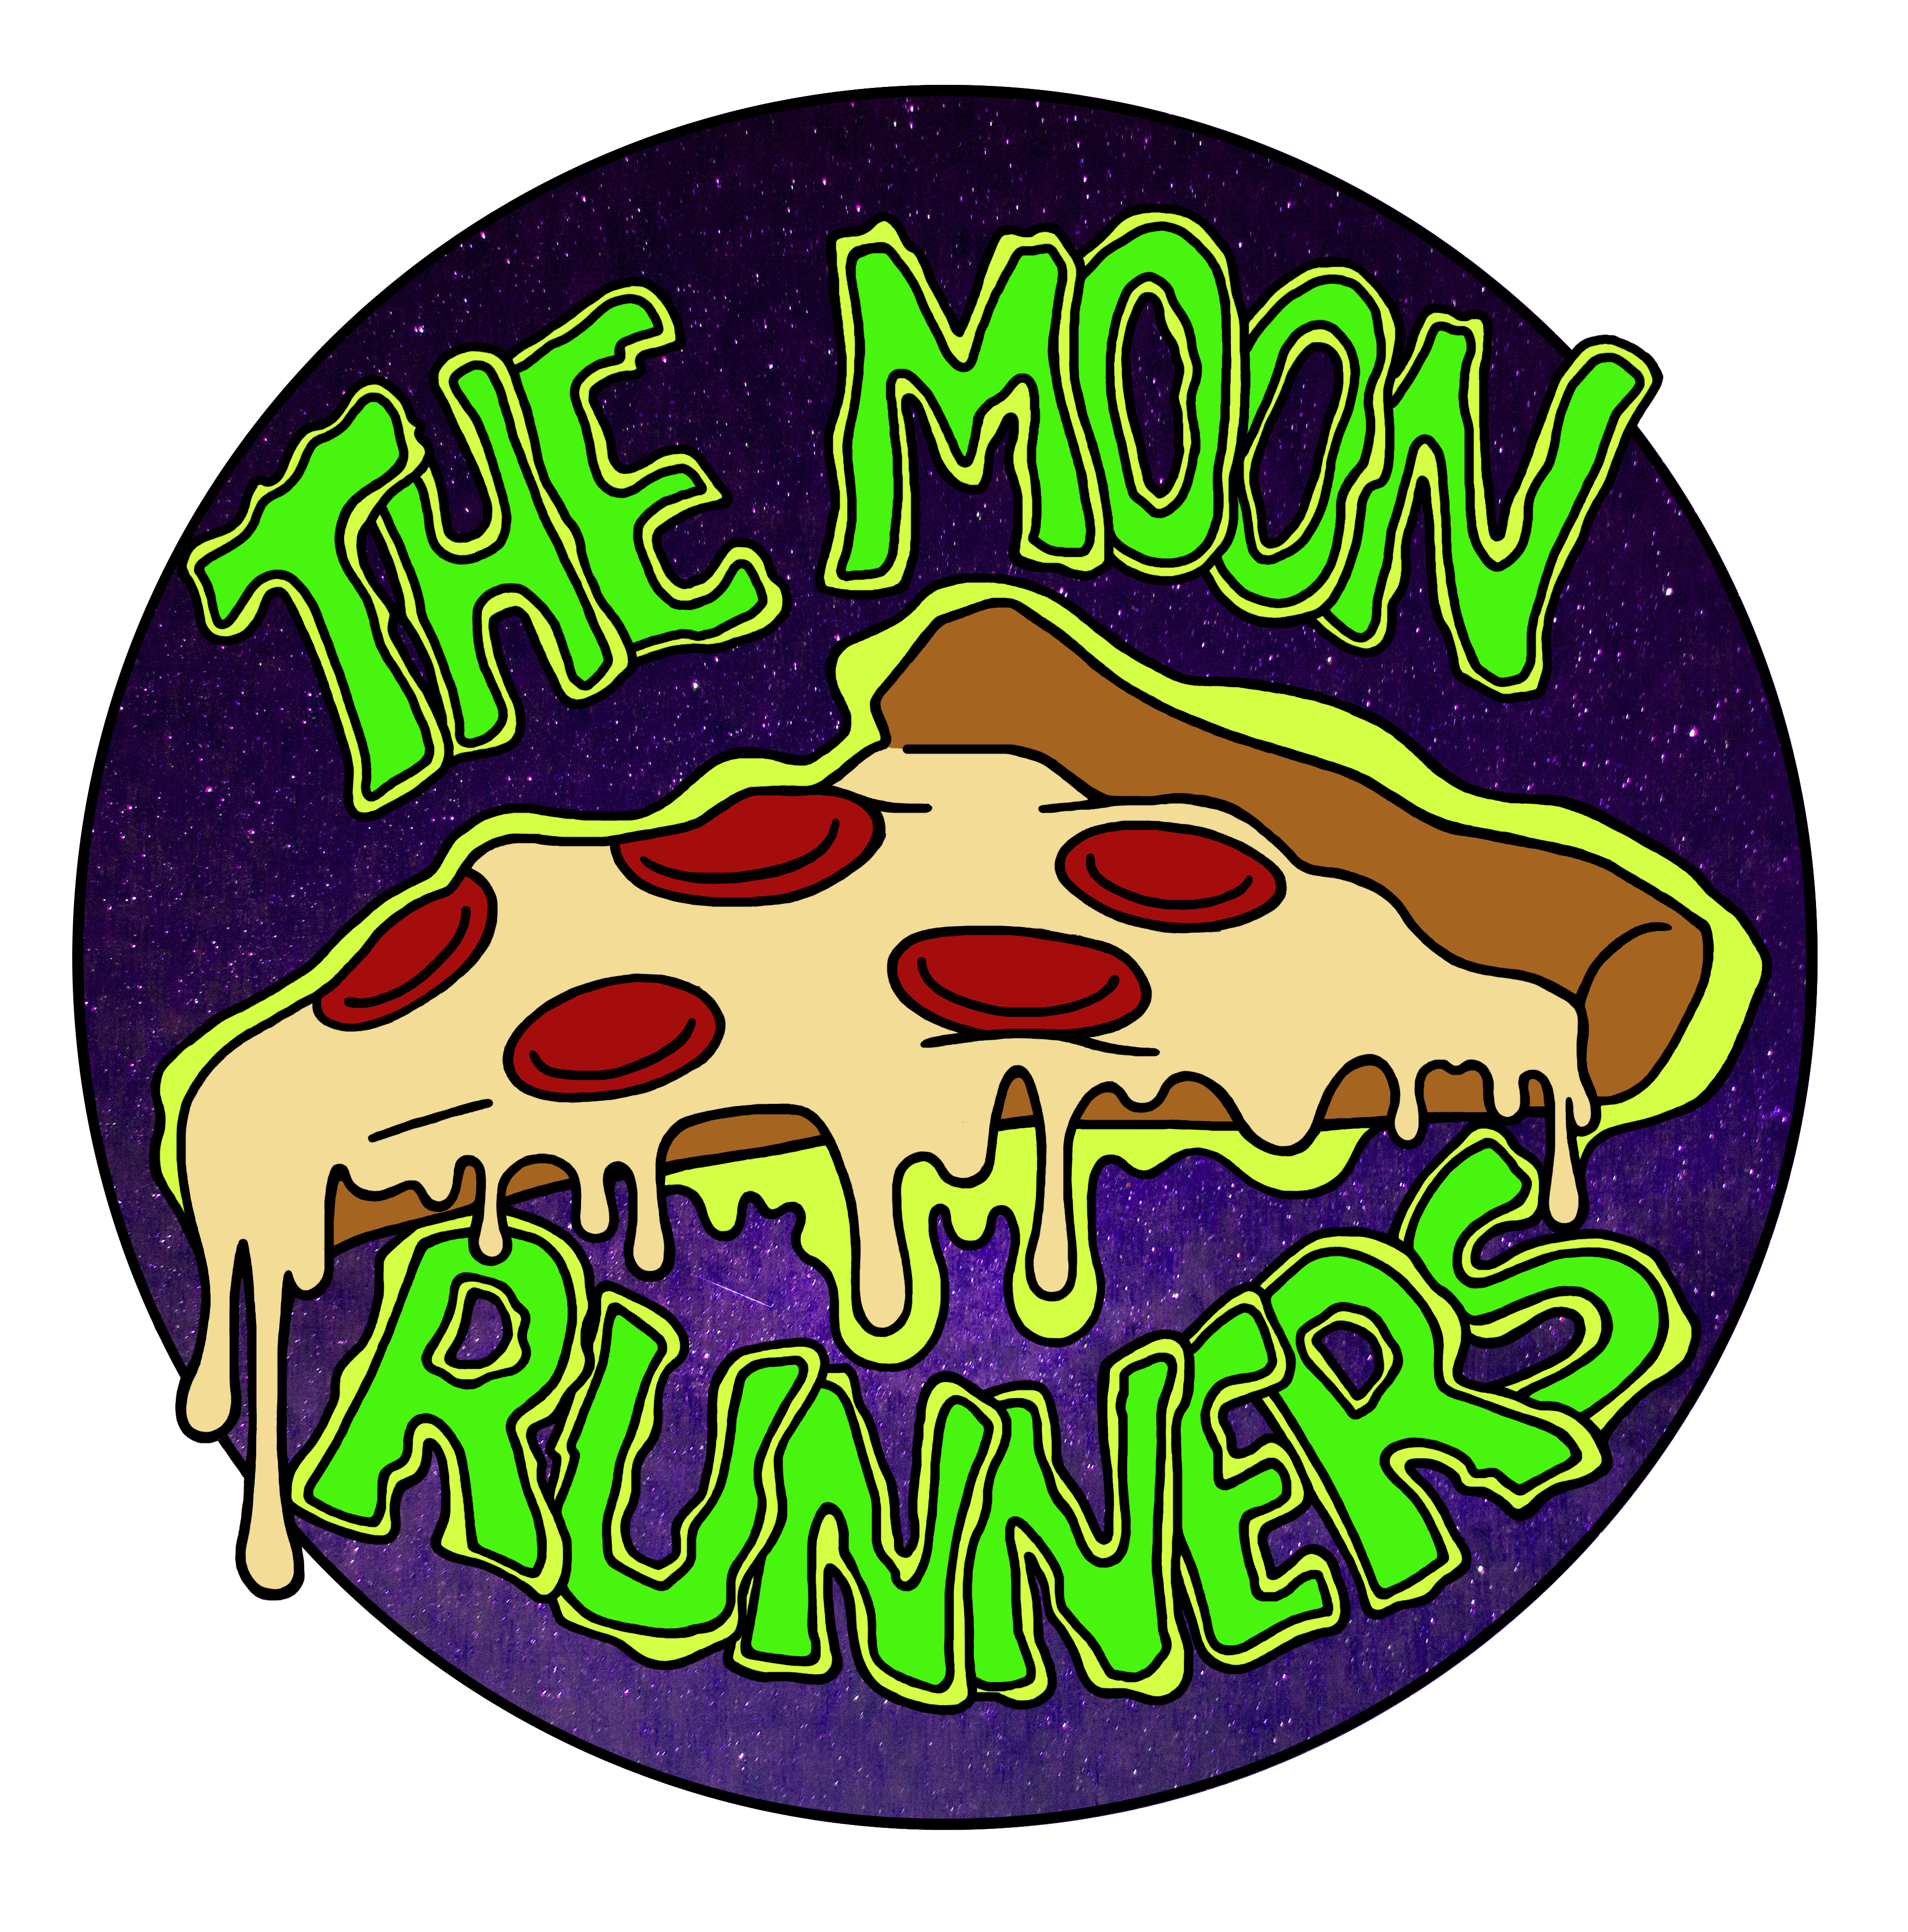 Moon Runners Pizza Sticker